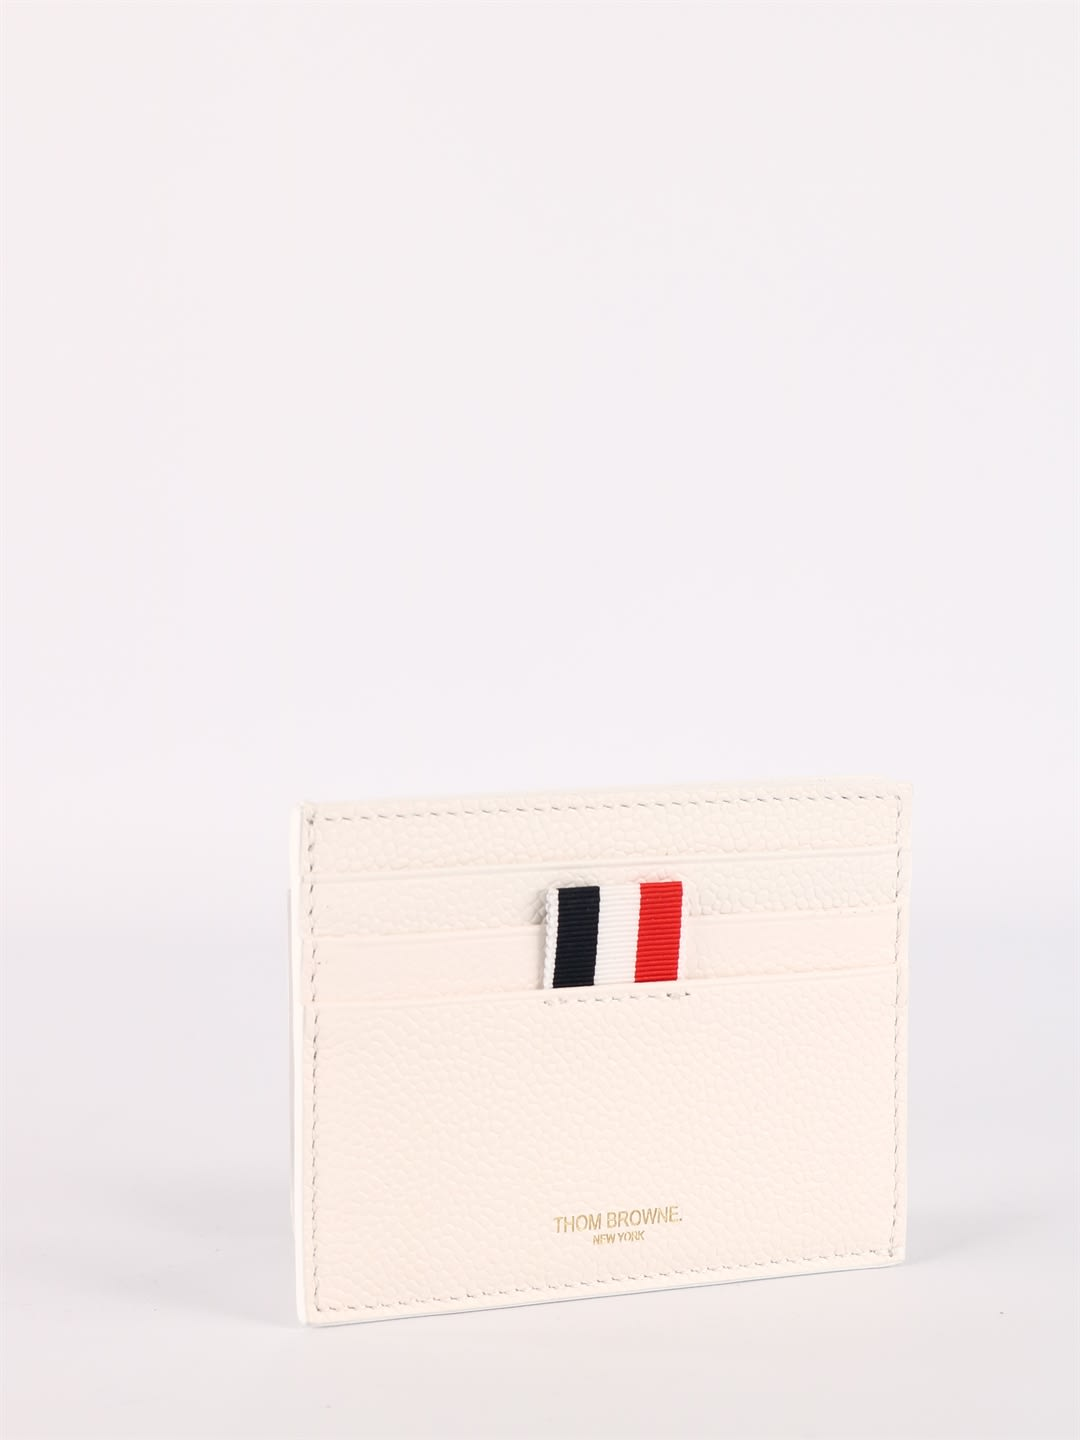 Thom Browne WHITE LEATHER CARD HOLDER